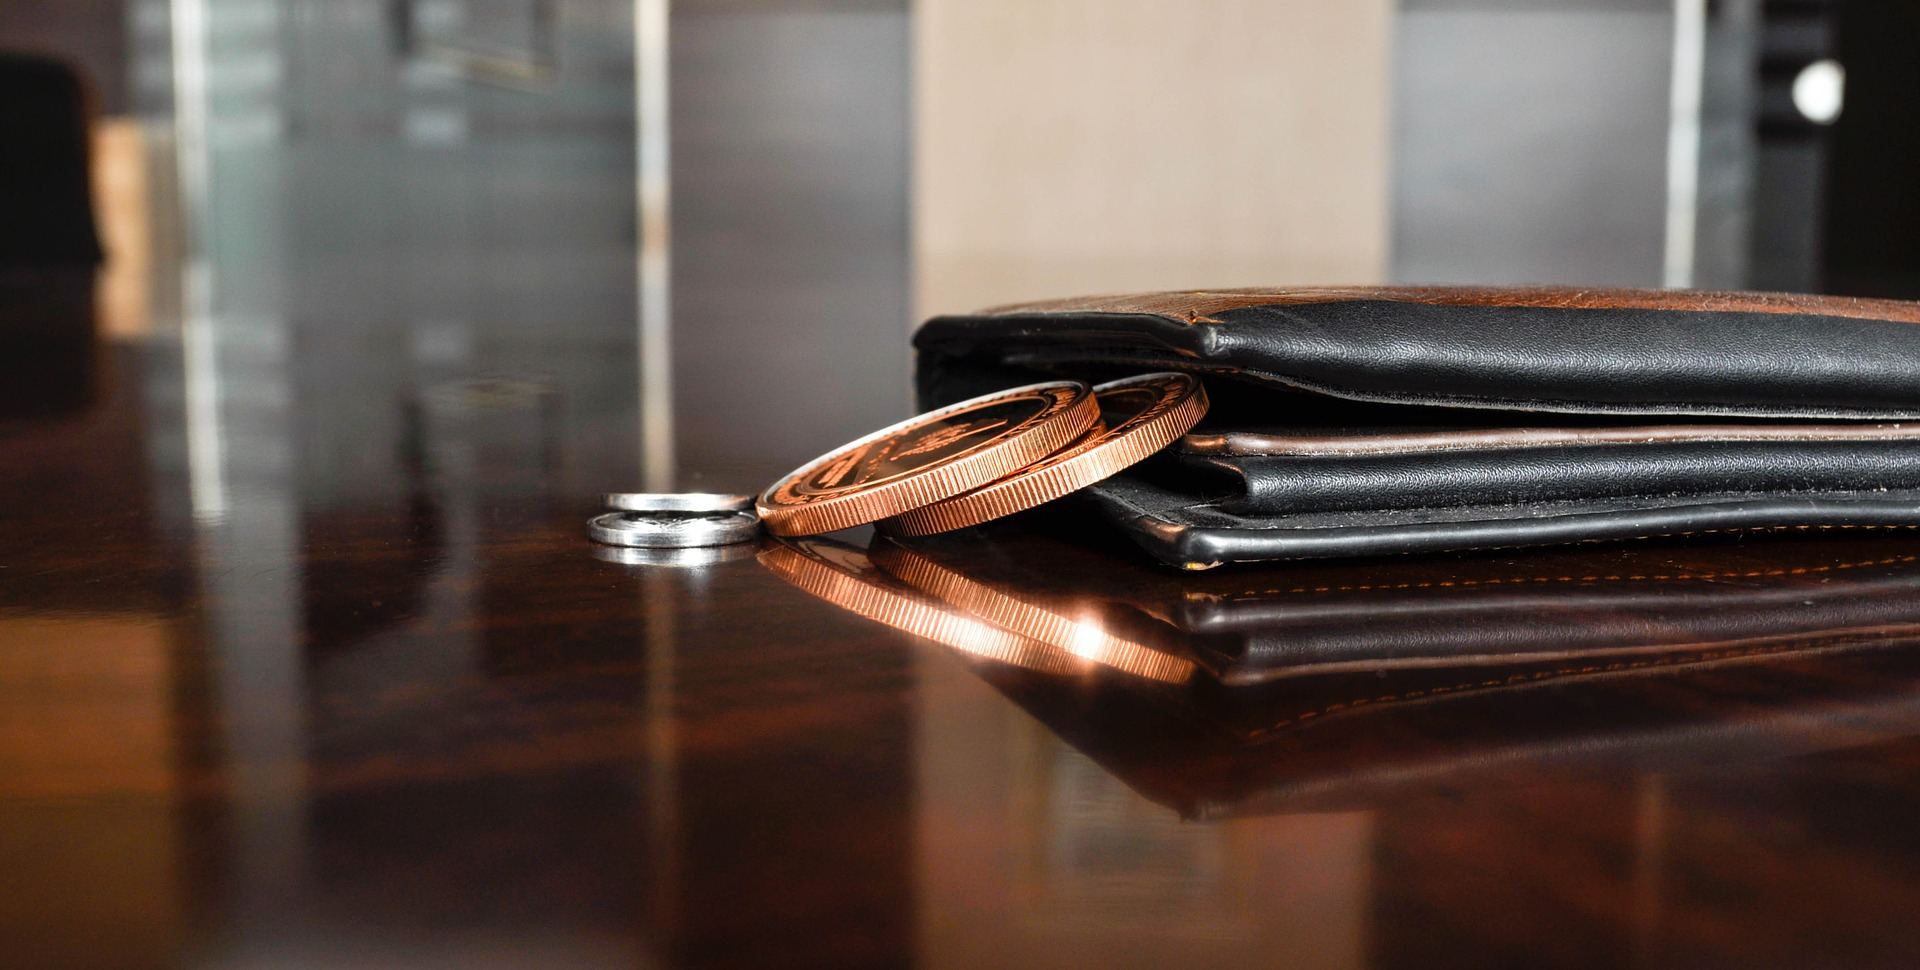 Wallet and coins sitting on a table.